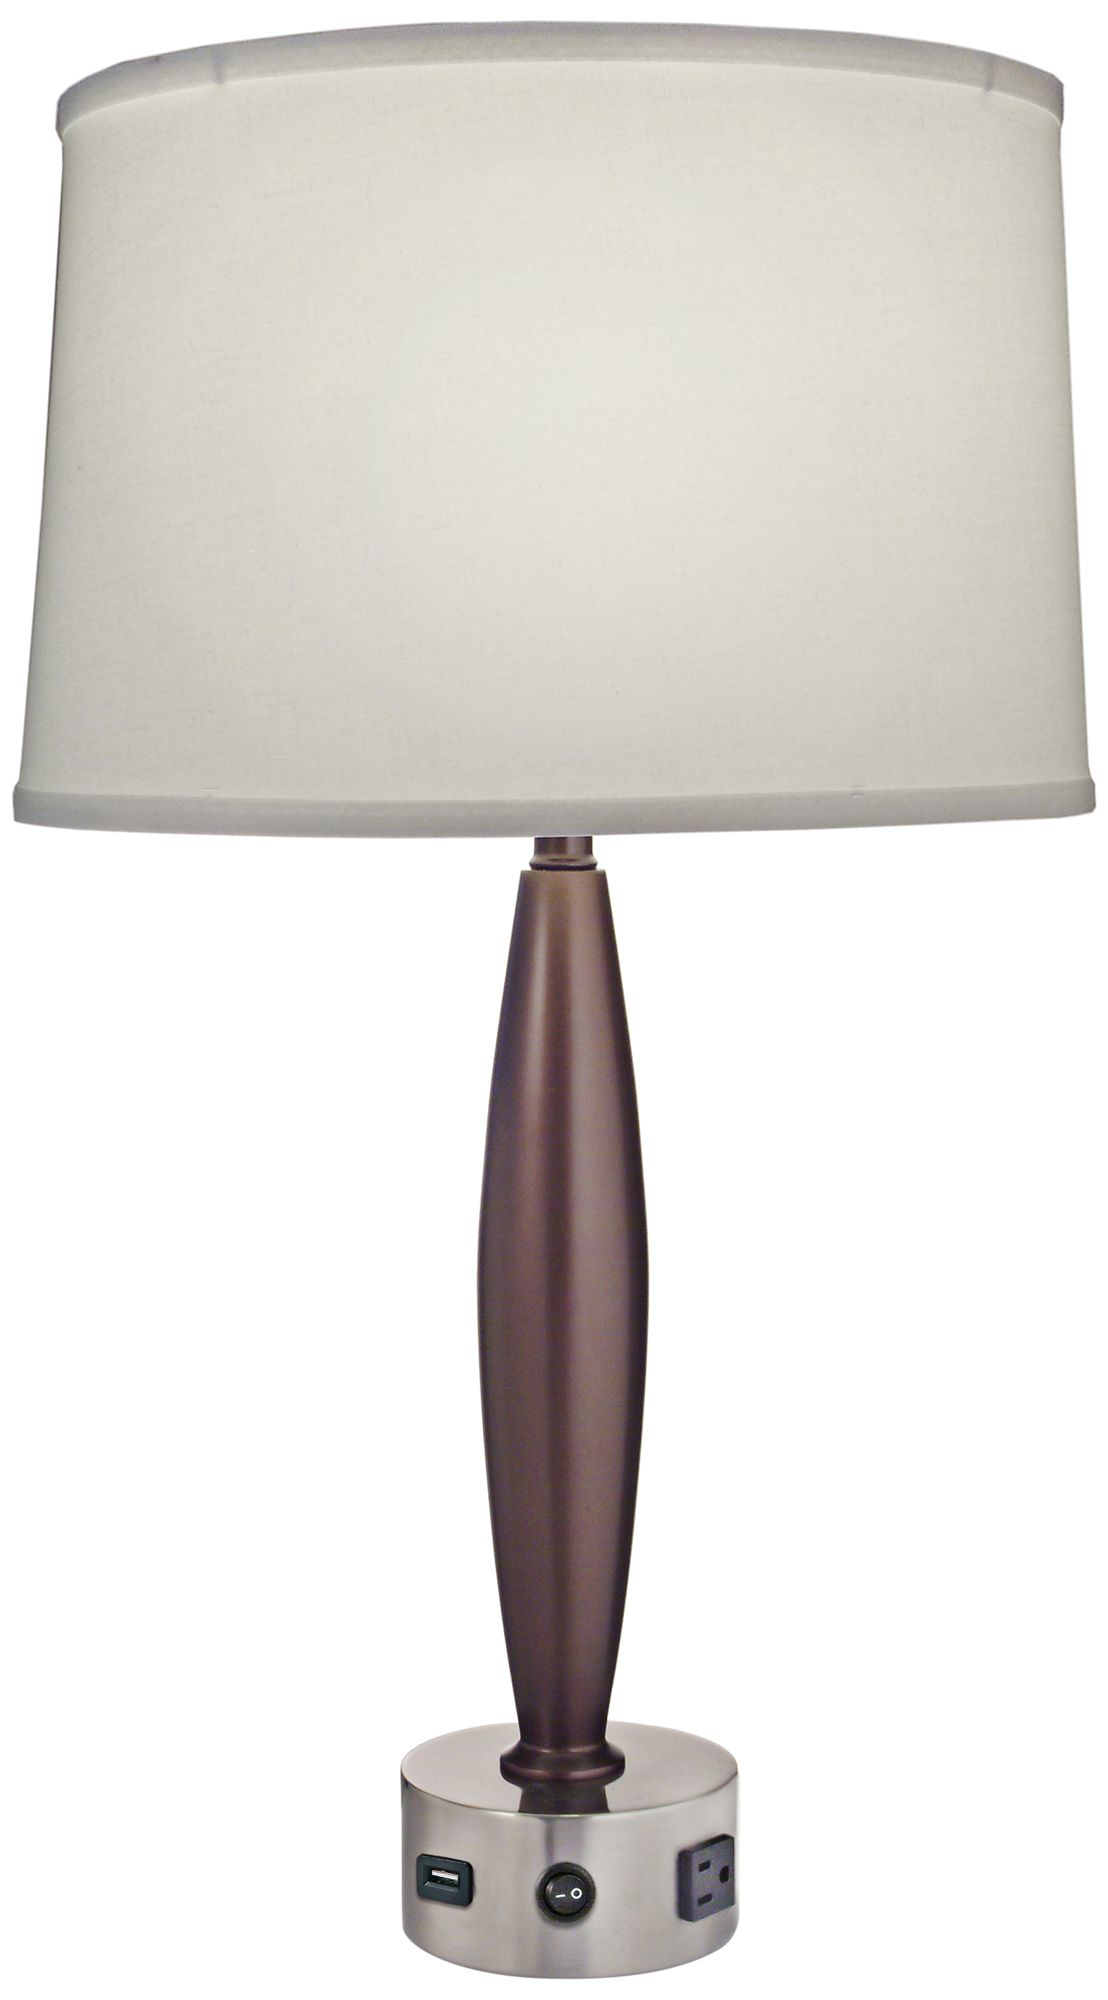 Usb Table Lamps Featuring Built In Ports Plus